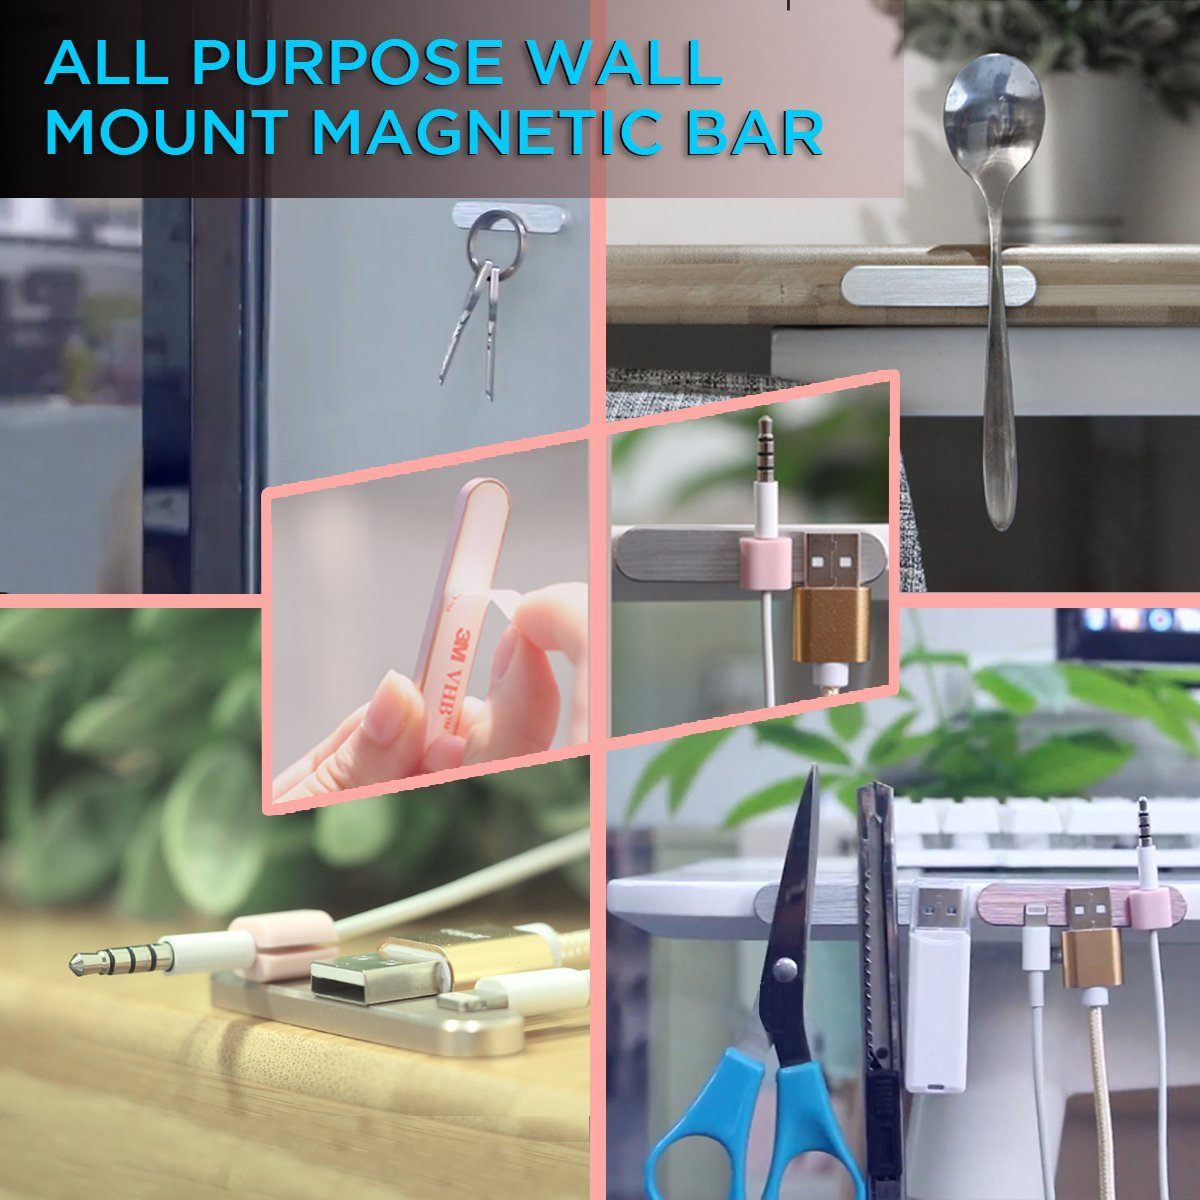 All-Purpose Wall Mount Magnetic Bar